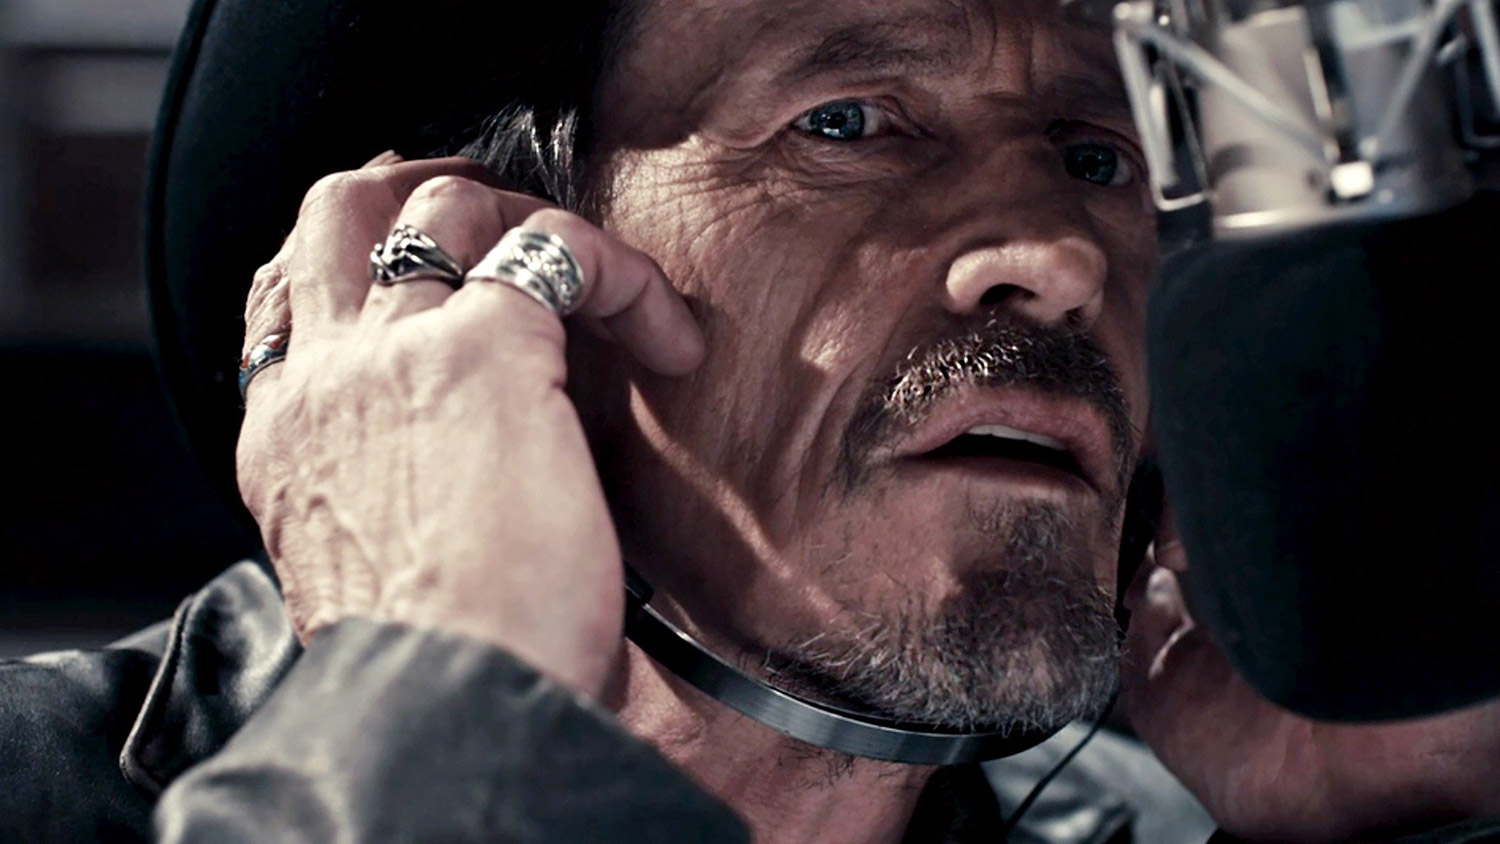 Canadian Horror Films - Pontypool, Grant Mazzy